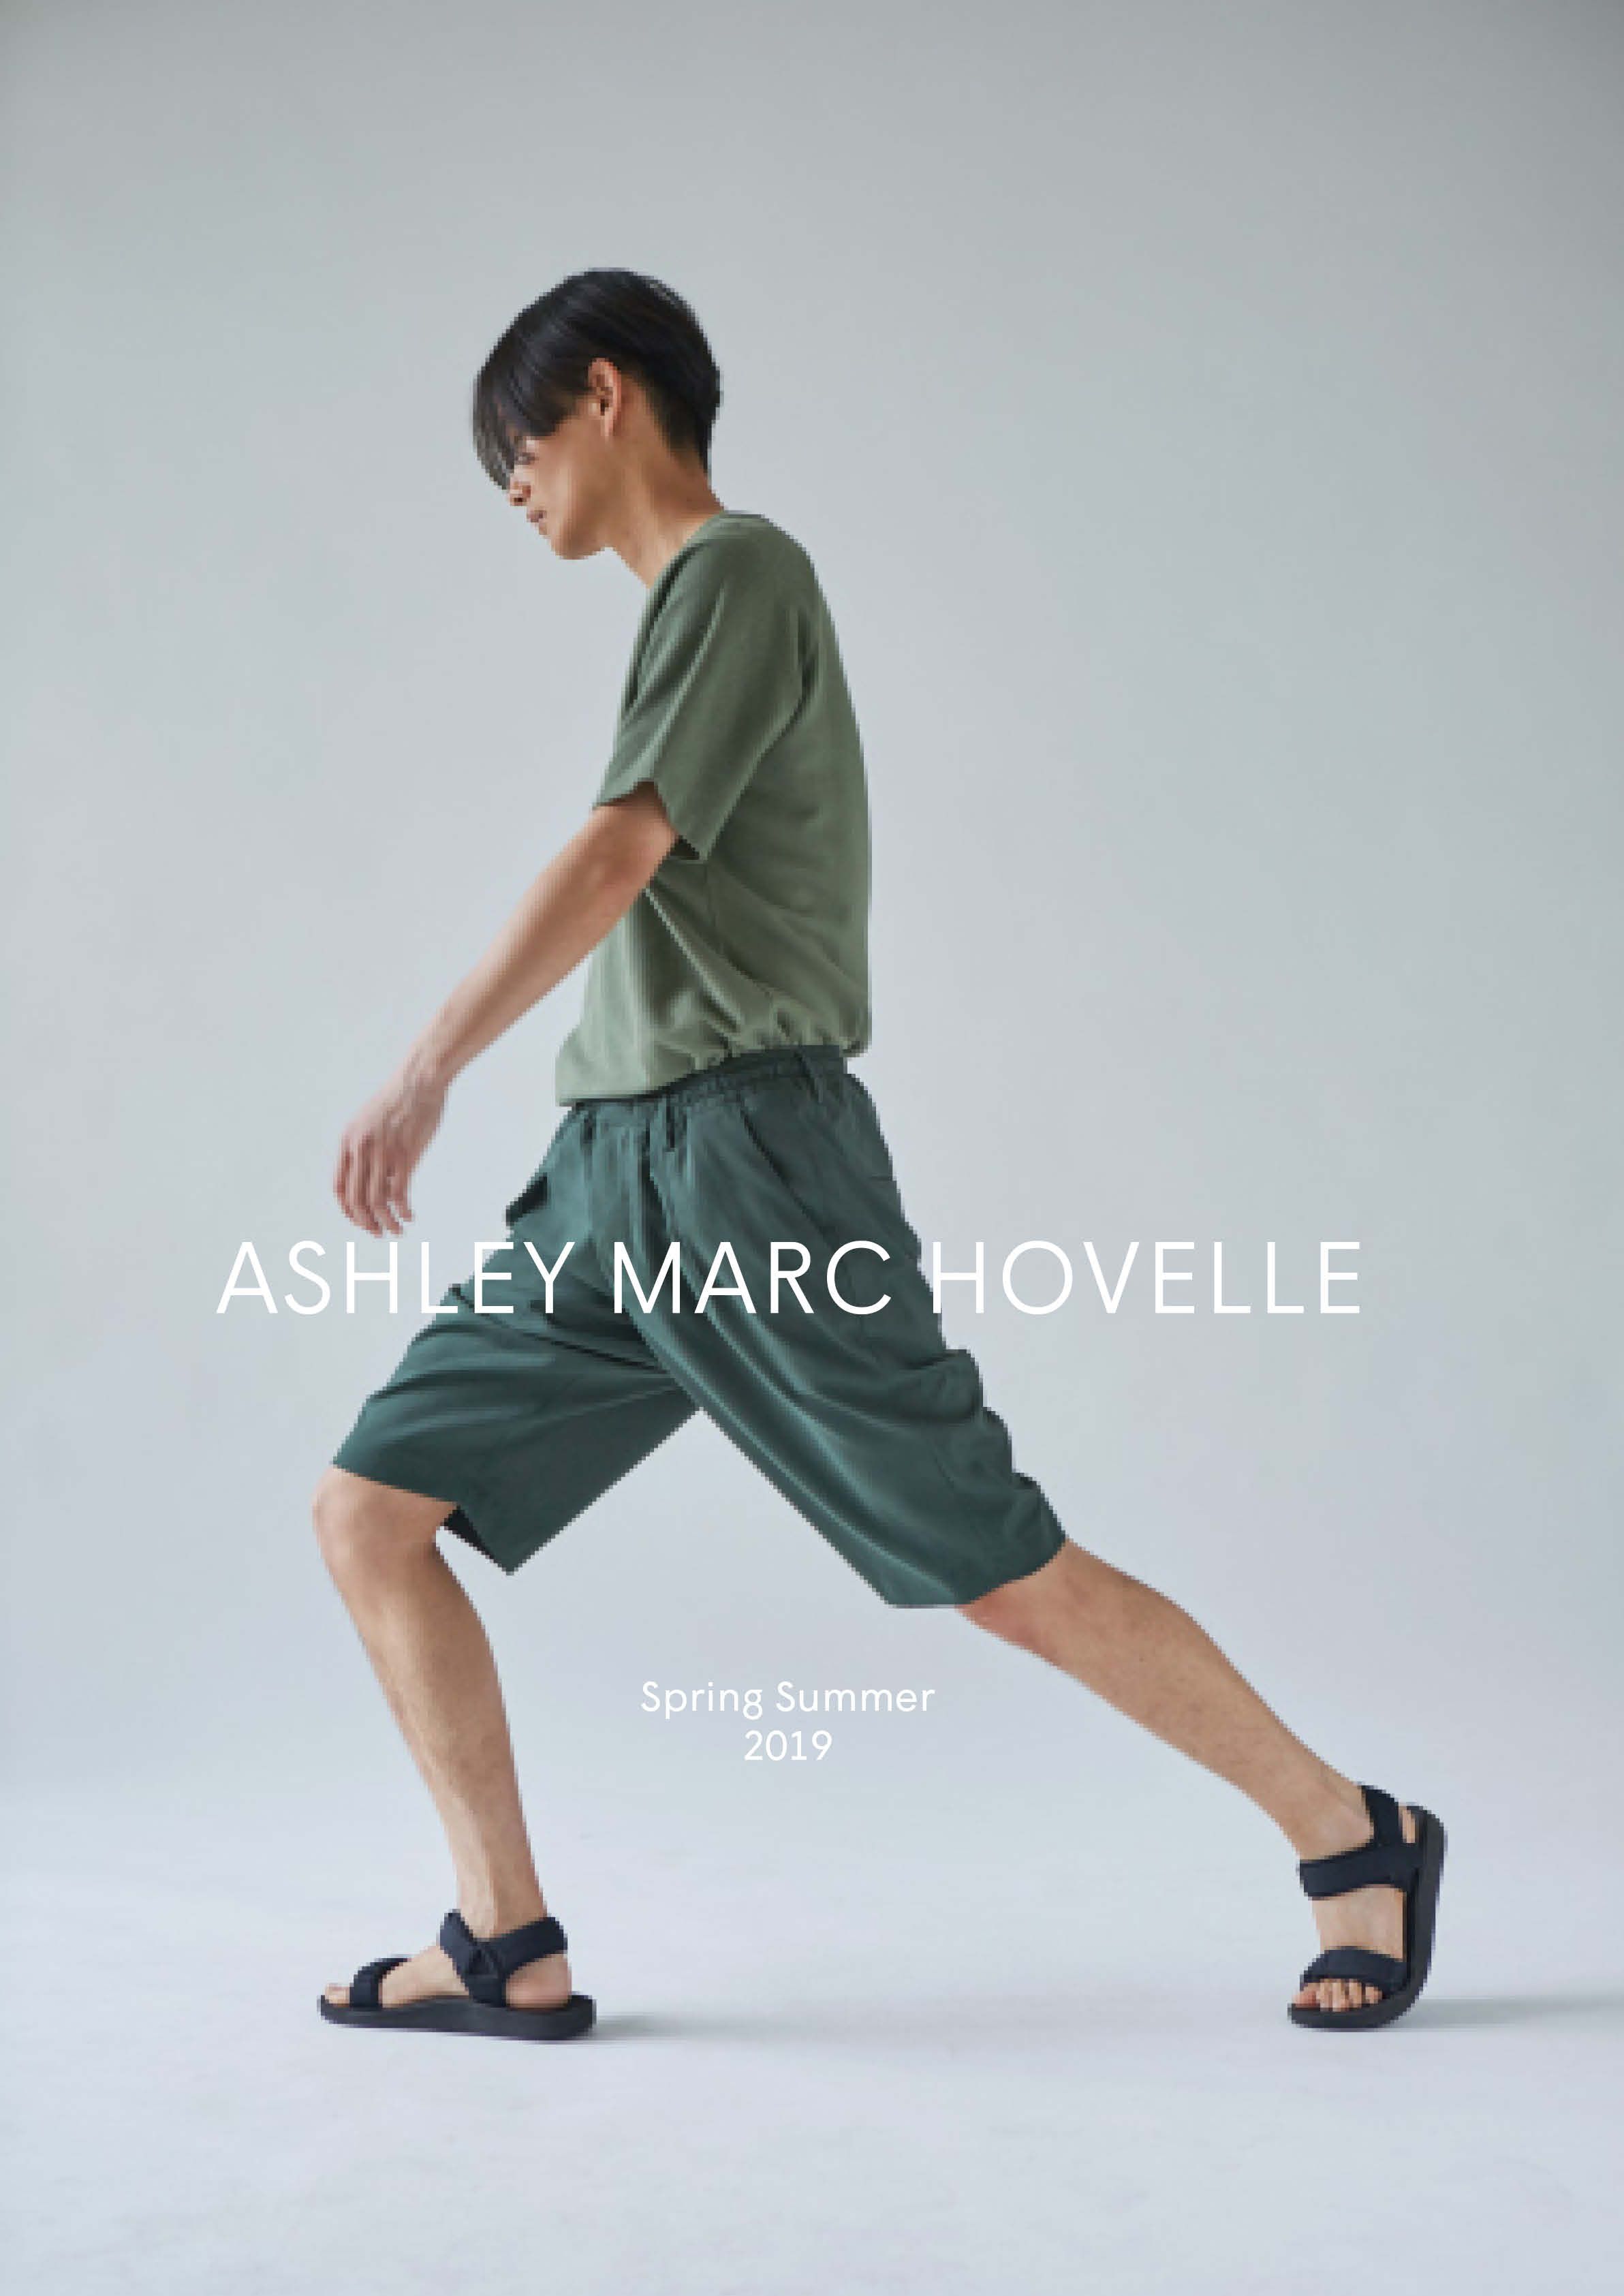 Ashley Marc Hovelle SS19 Lookbook final sml.jpg